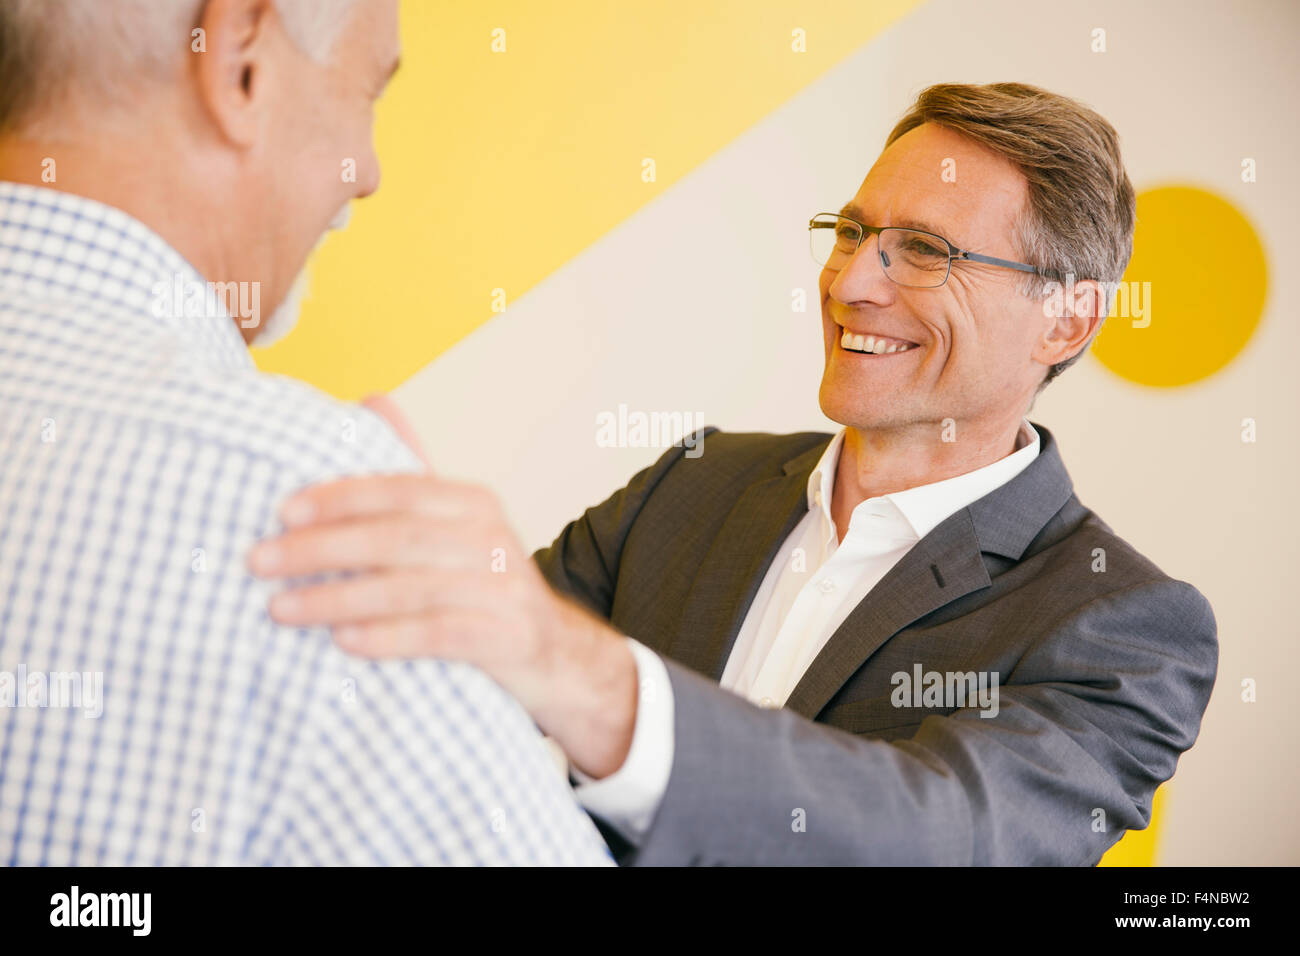 Portrait of smiling mature man talking to another man in an office - Stock Image